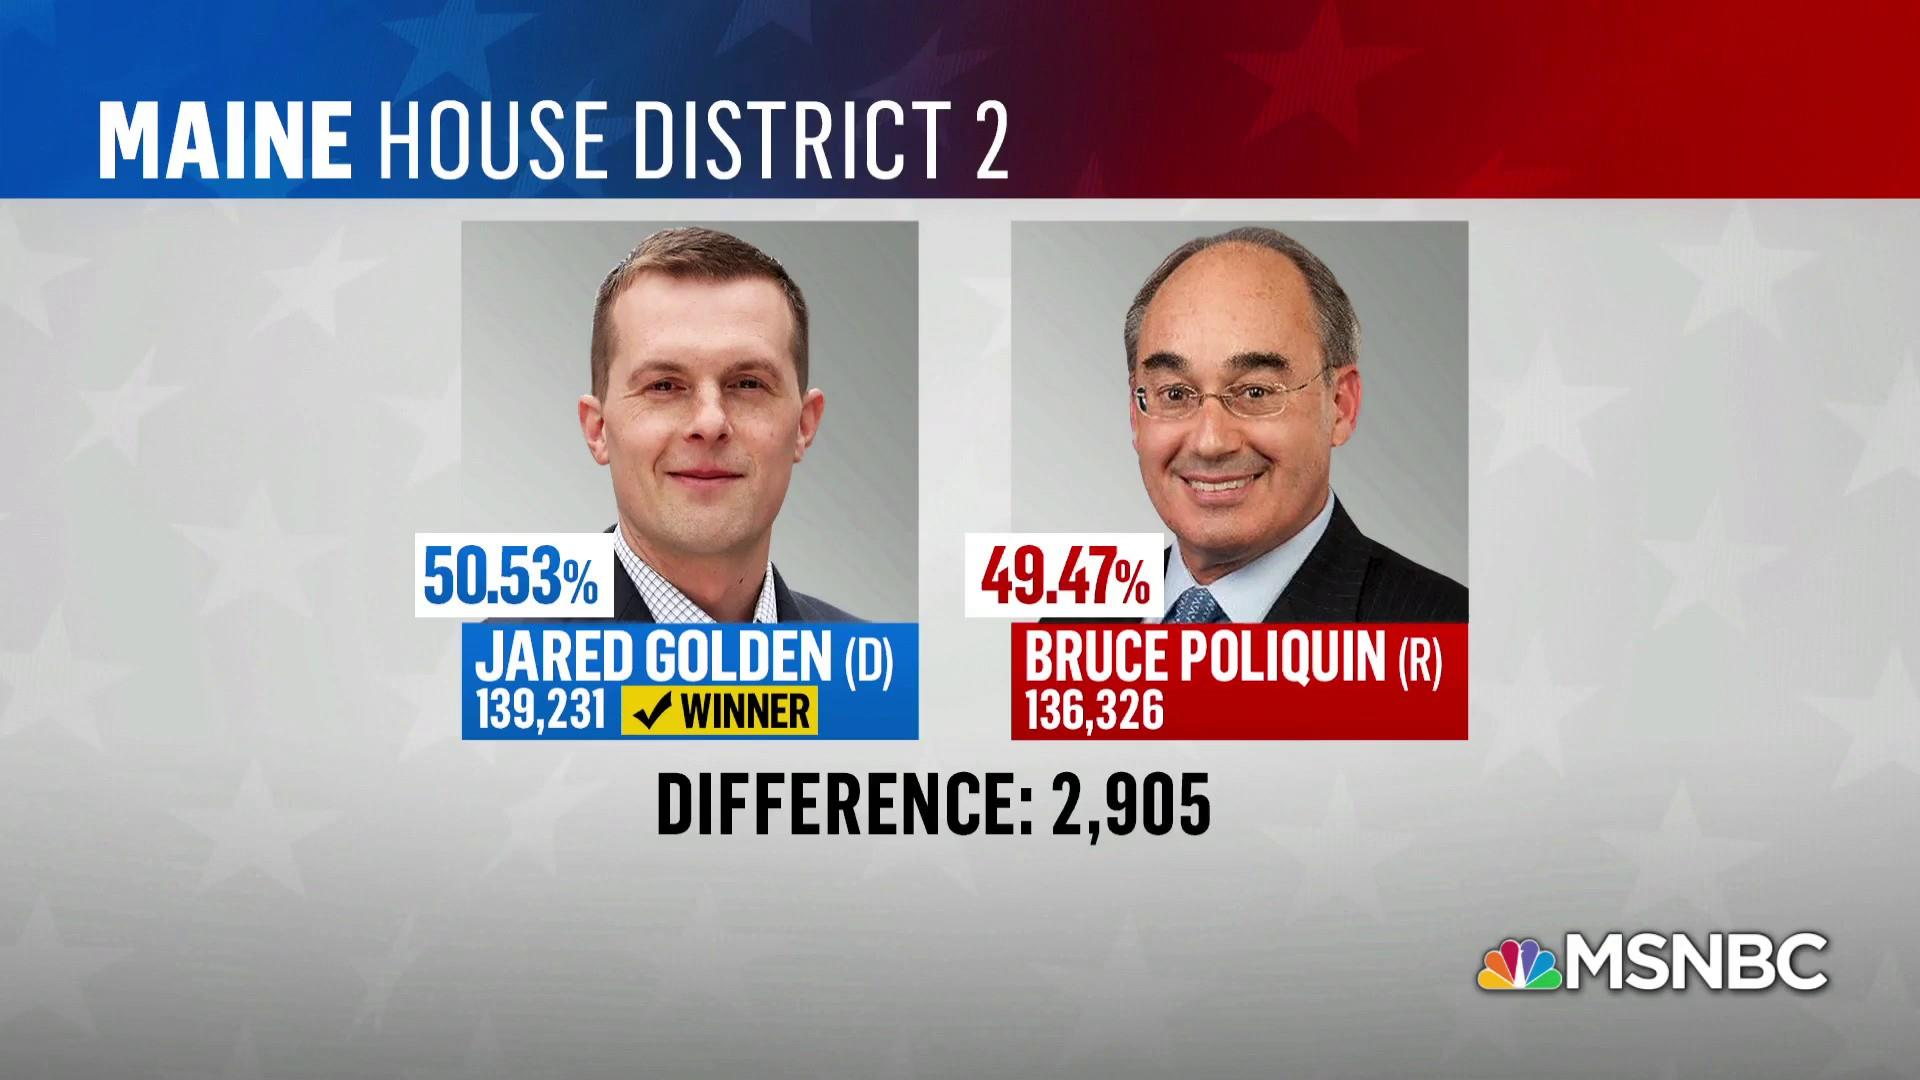 Blue wave gets bigger: Dem wins Maine 2nd Congressional District